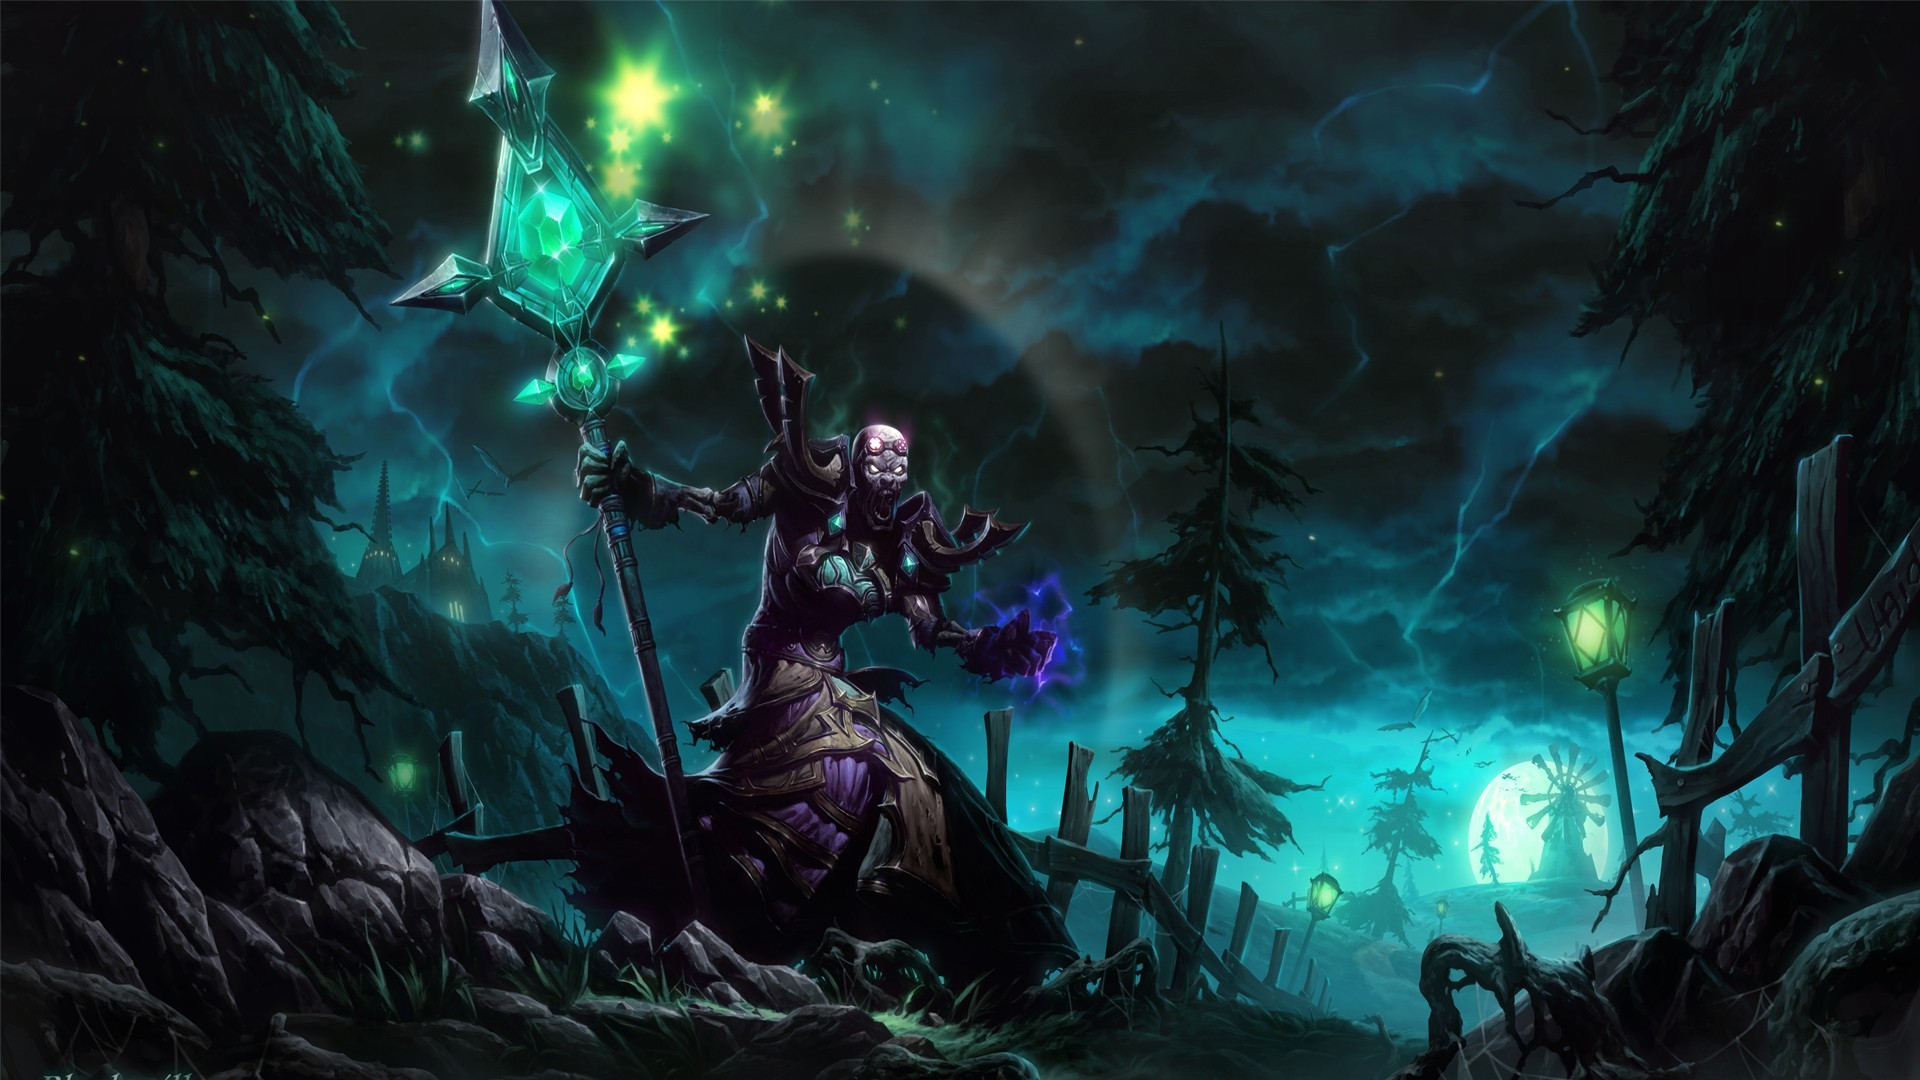 Undead shadow priest I already had one when I first saw this pic (though  mine